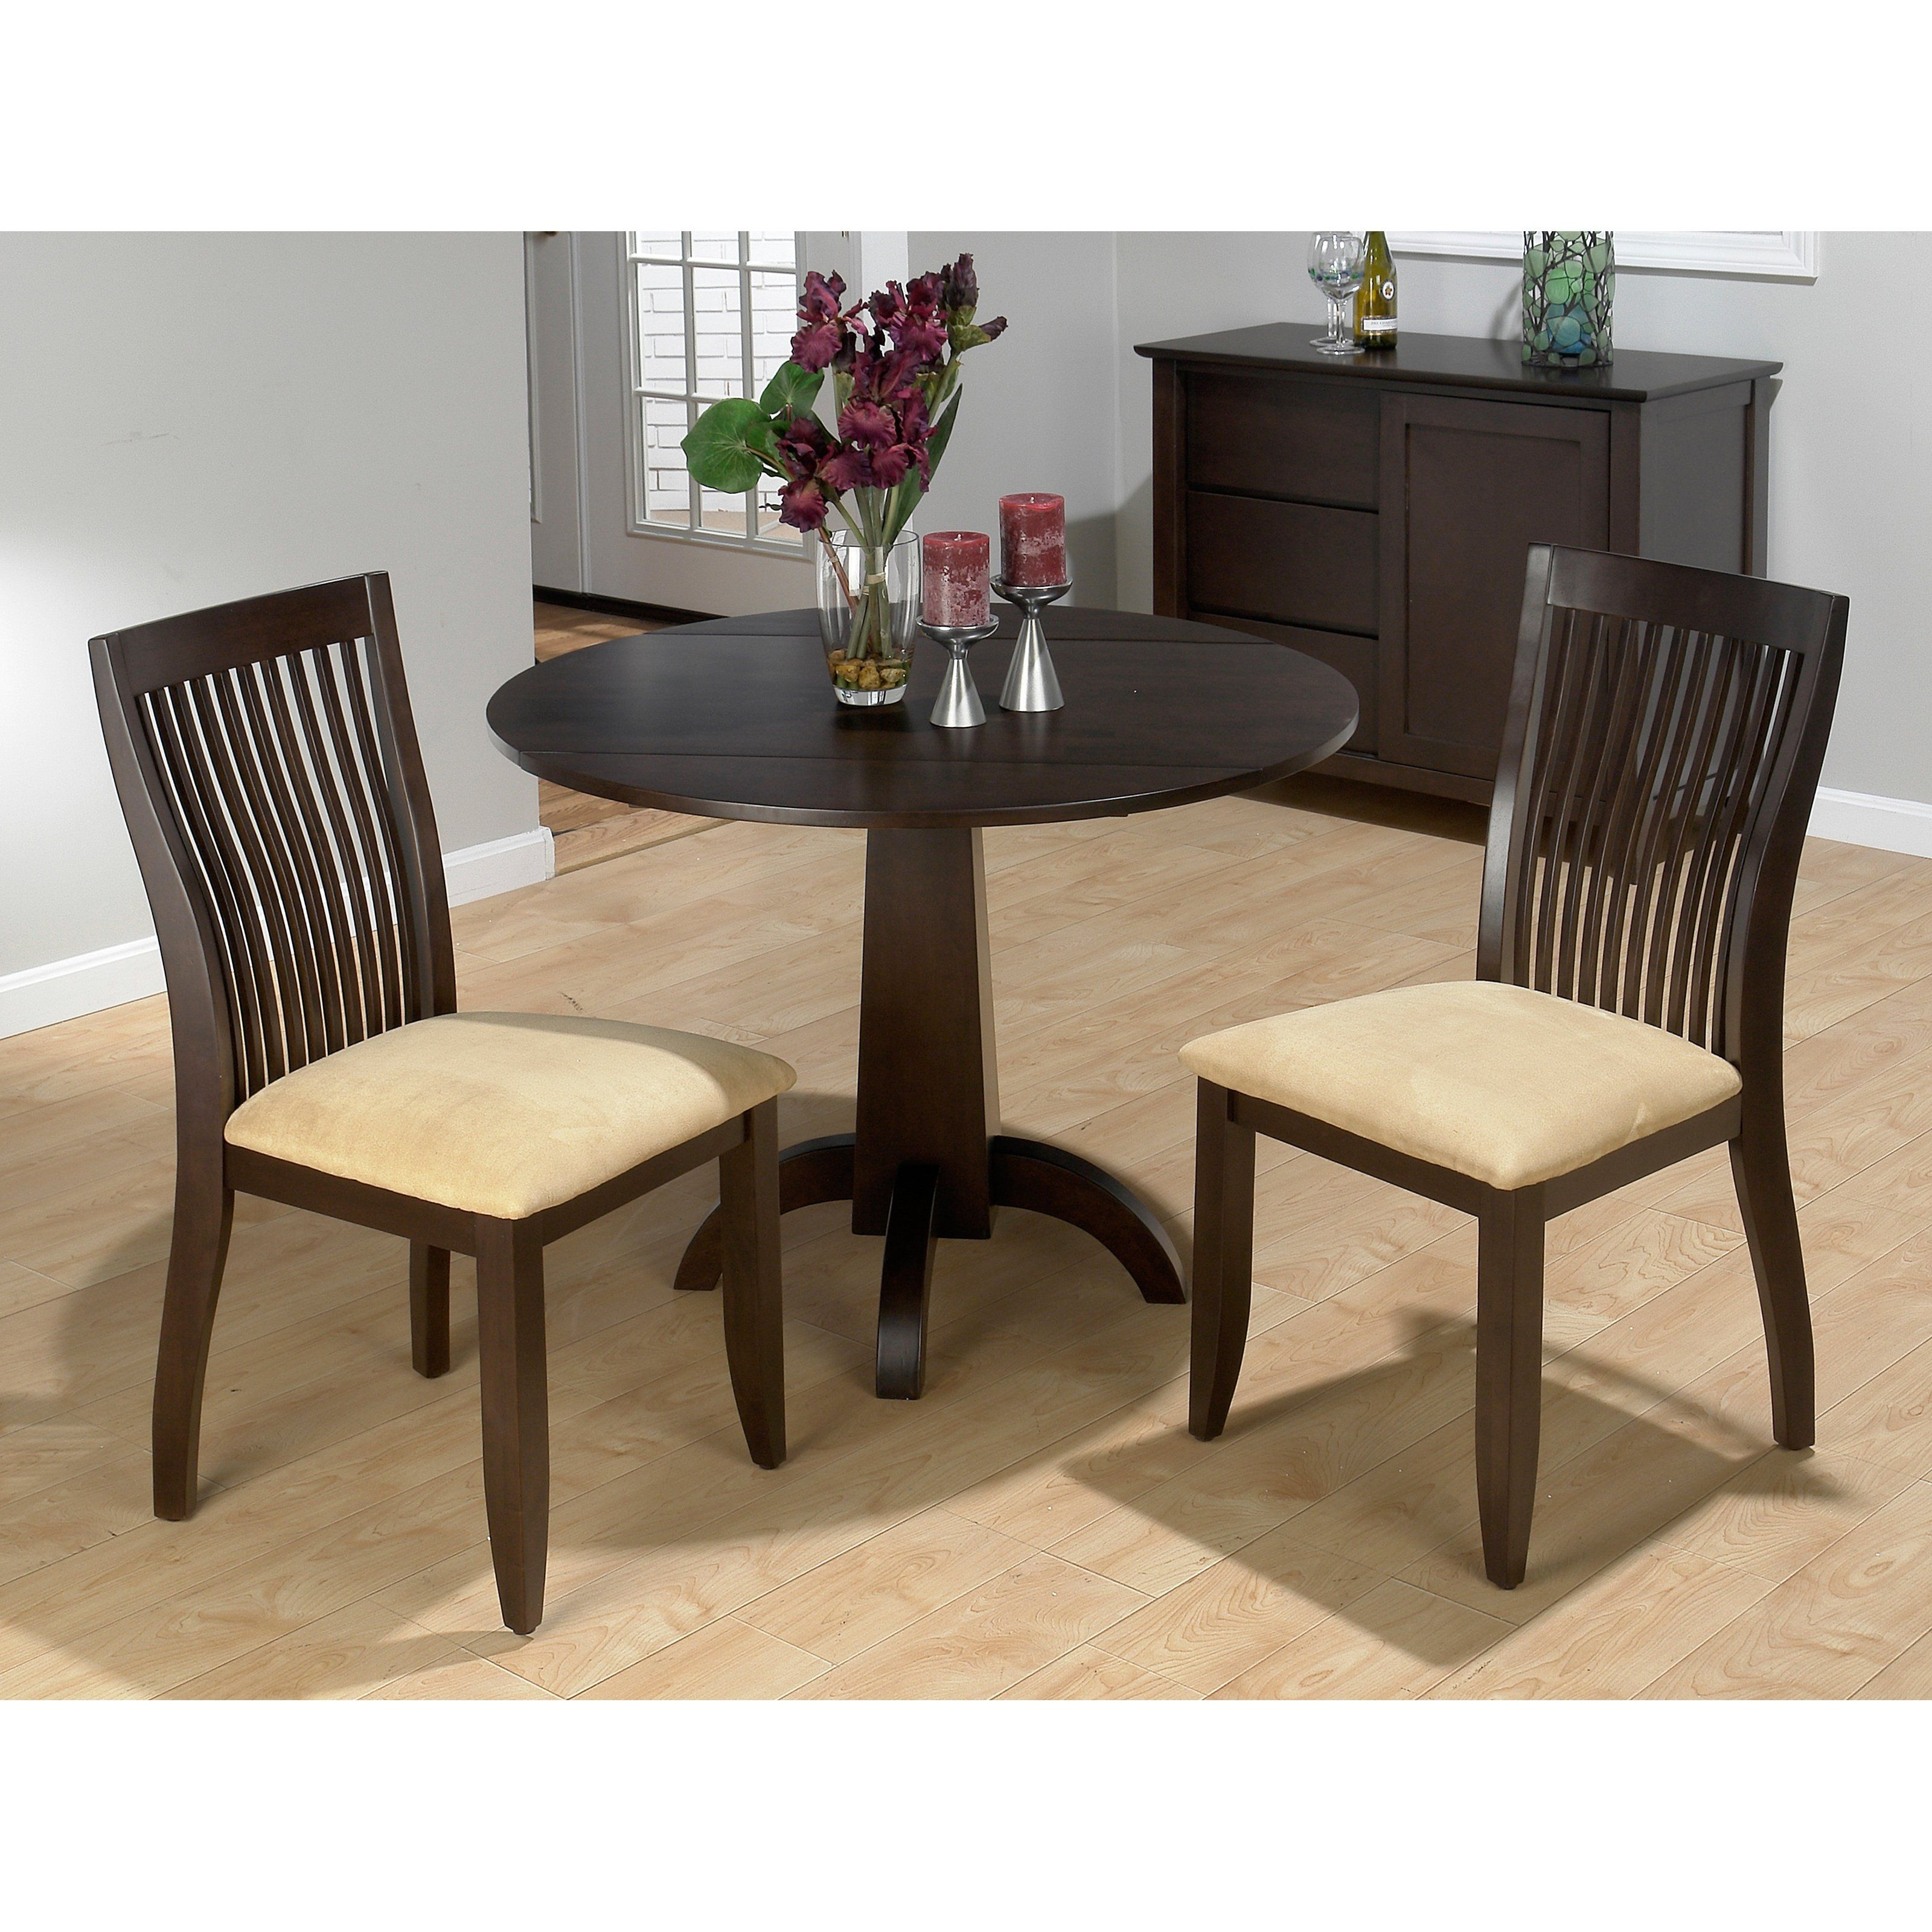 Delicieux Bistro Table Set Indoor For 2 Kitchen Small